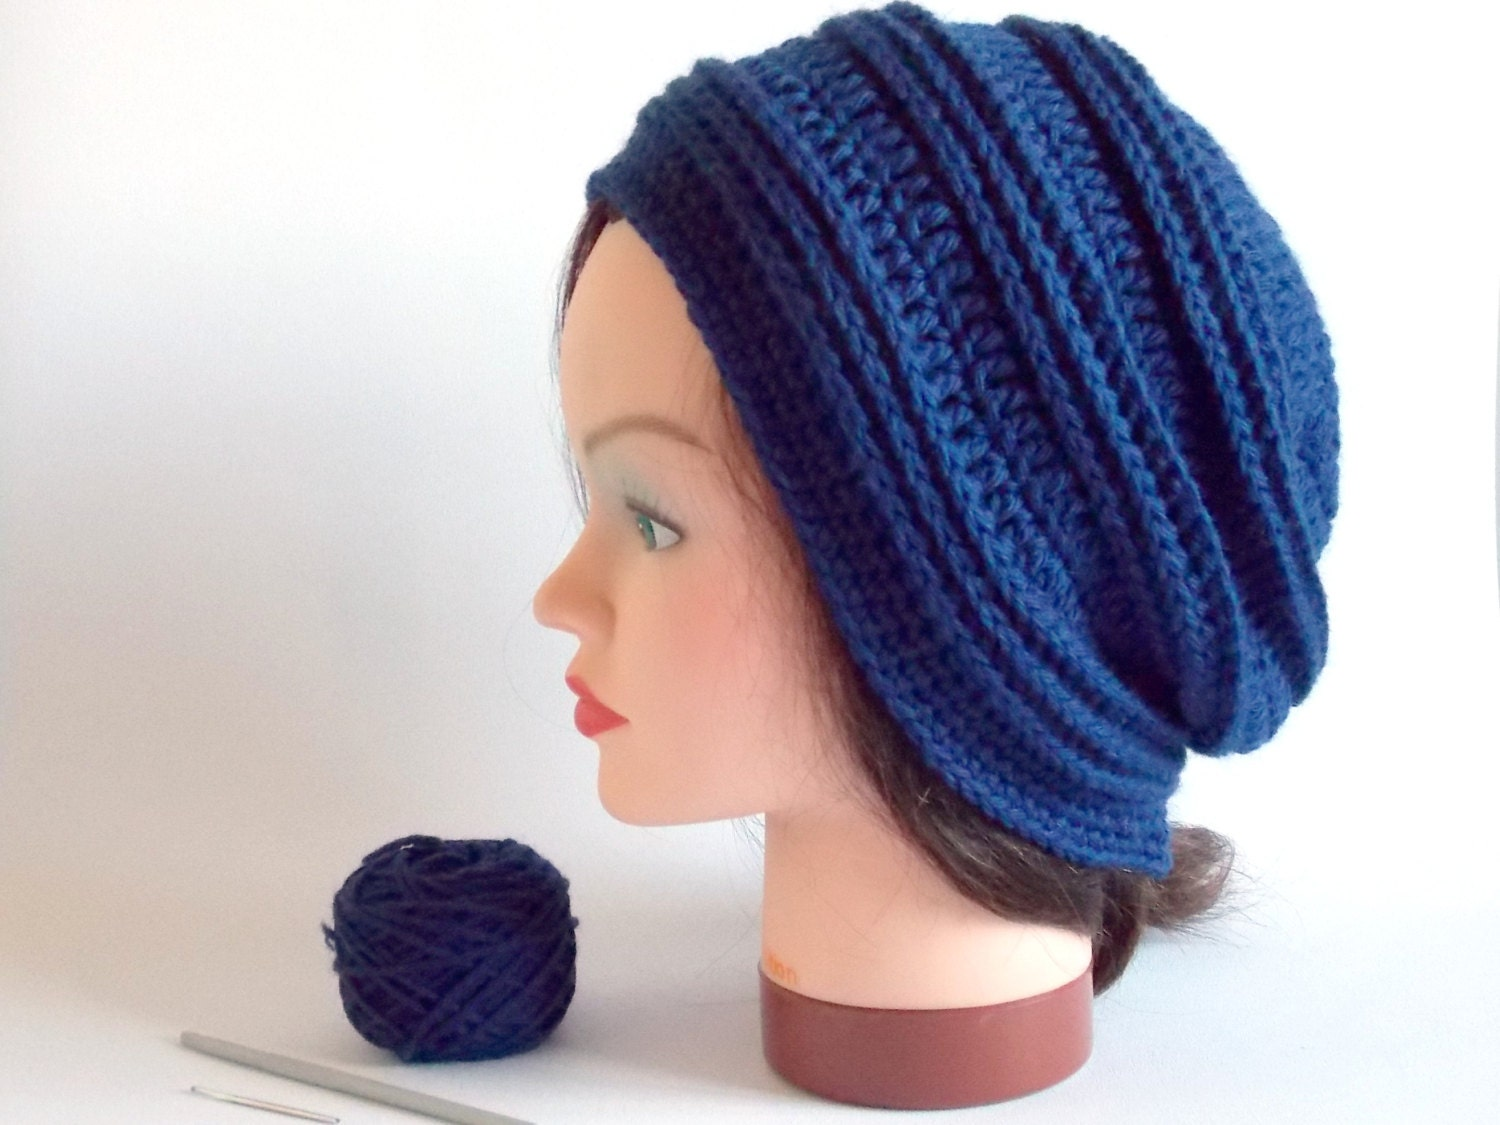 How To Crochet A Beanie Tutorial Beginner Friendly : PATTERN: Beginner friendly crochet horizontal Ribbed